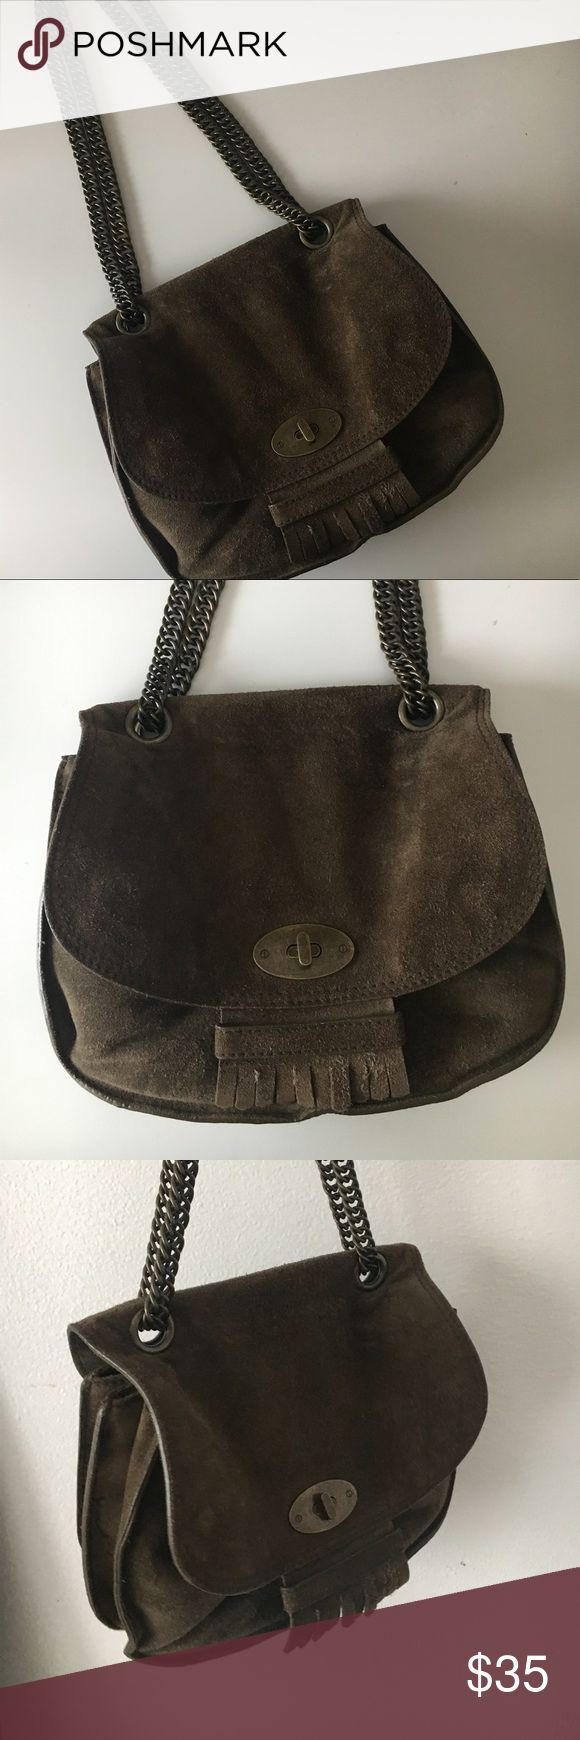 Madewell bag This was a Poshmark purchase. Low price due to shape of bag. The bag chain can be a shoulder bag or a cross body. No stains or wear and tear on fabric. Madewell Bags Shoulder Bags